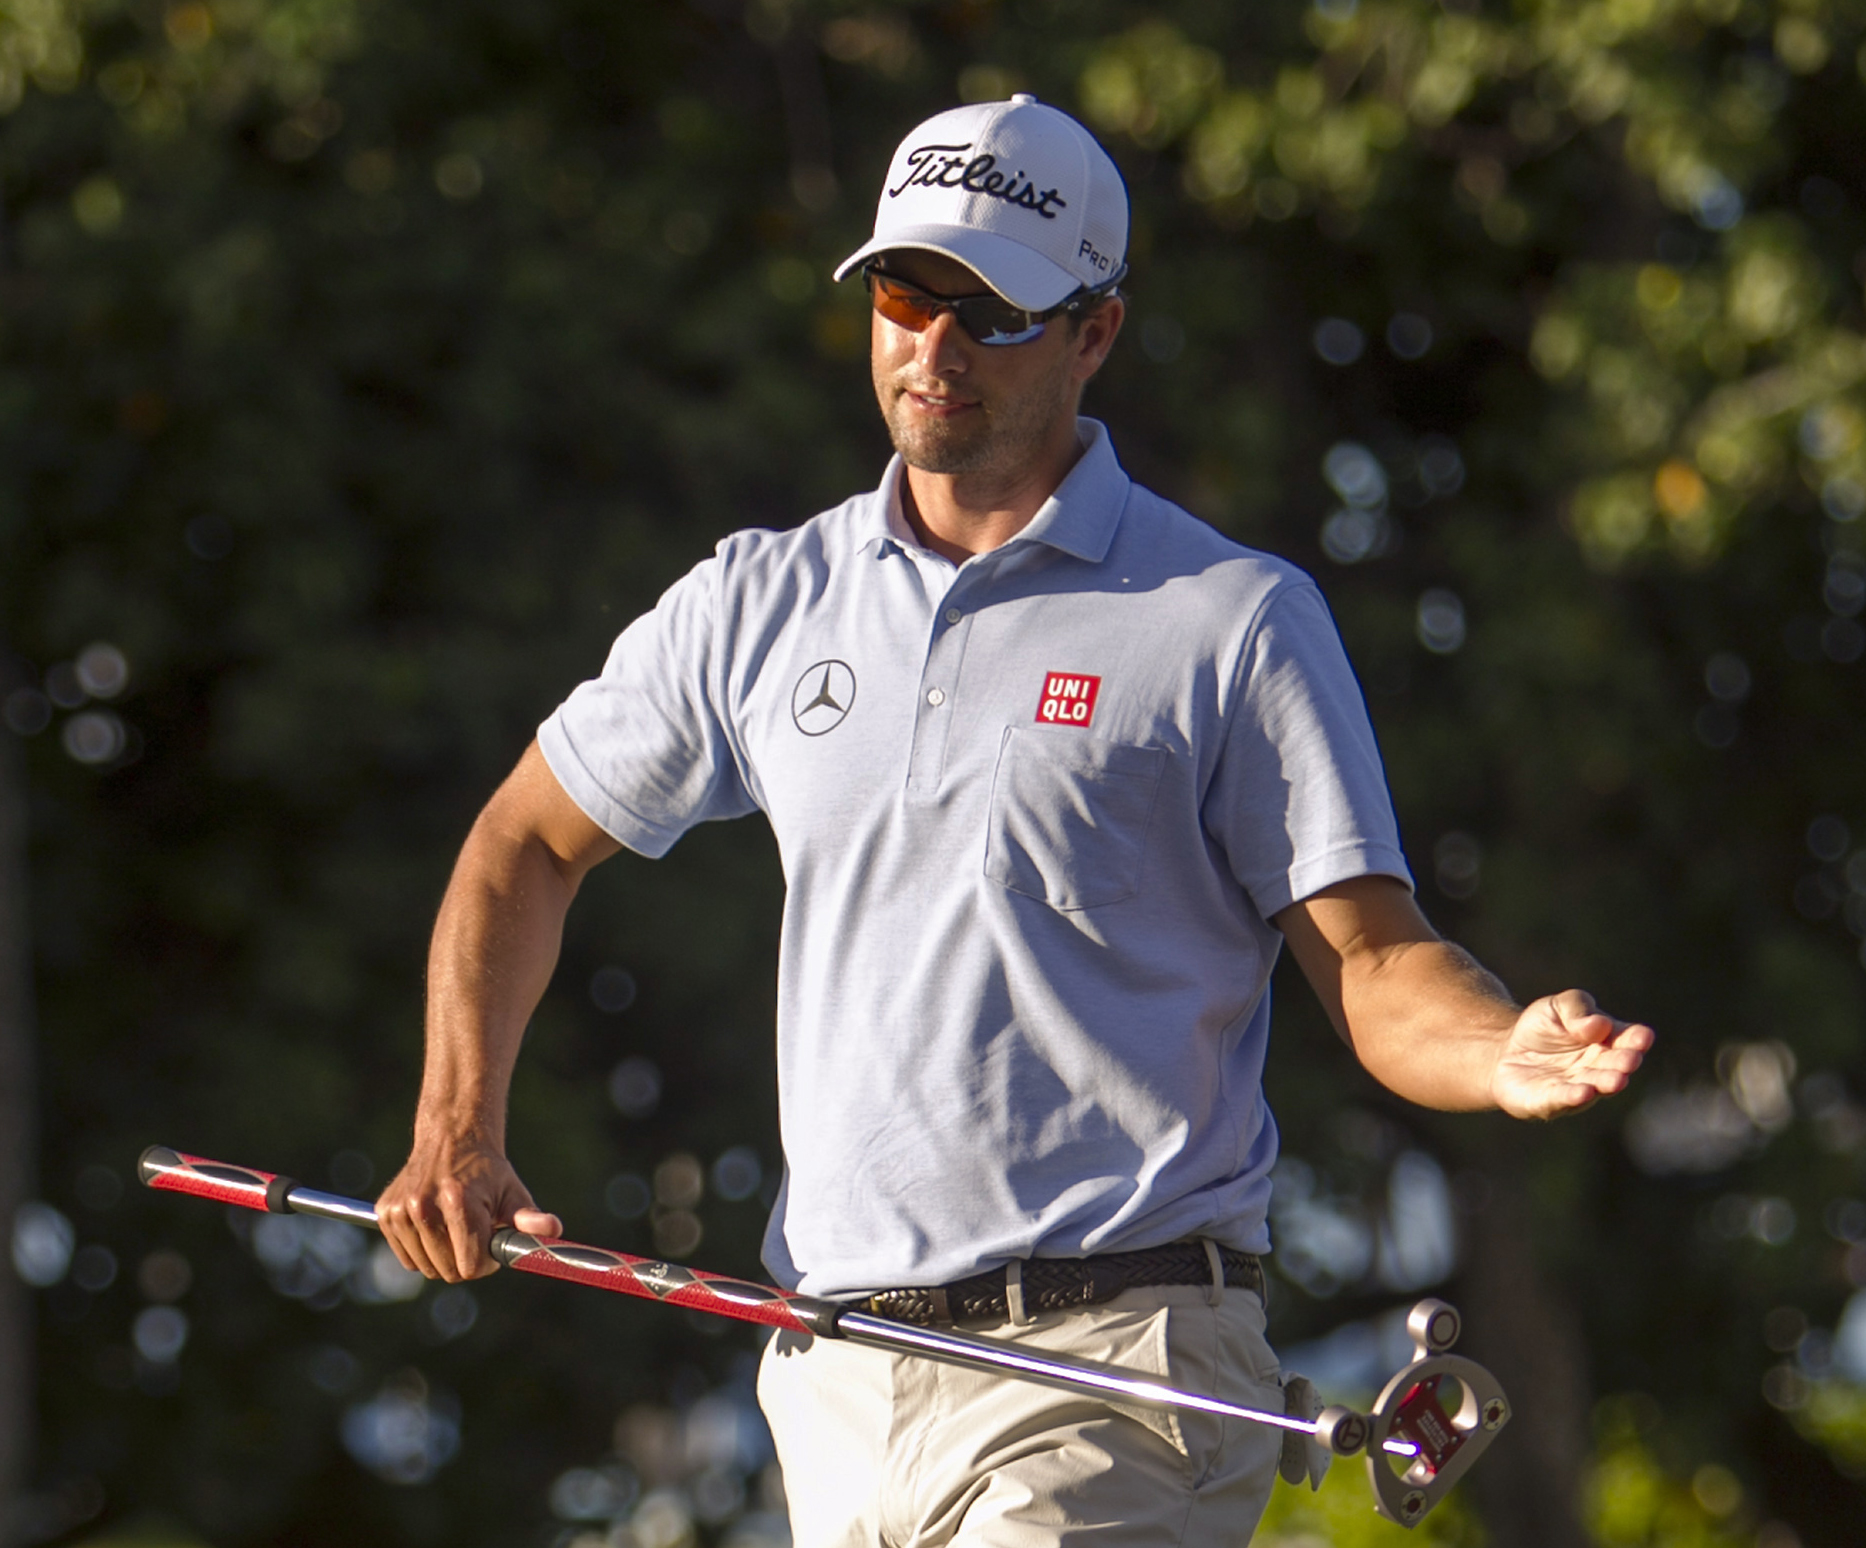 Adam Scott during the first round of the 2014 Sony Open in Honolulu.